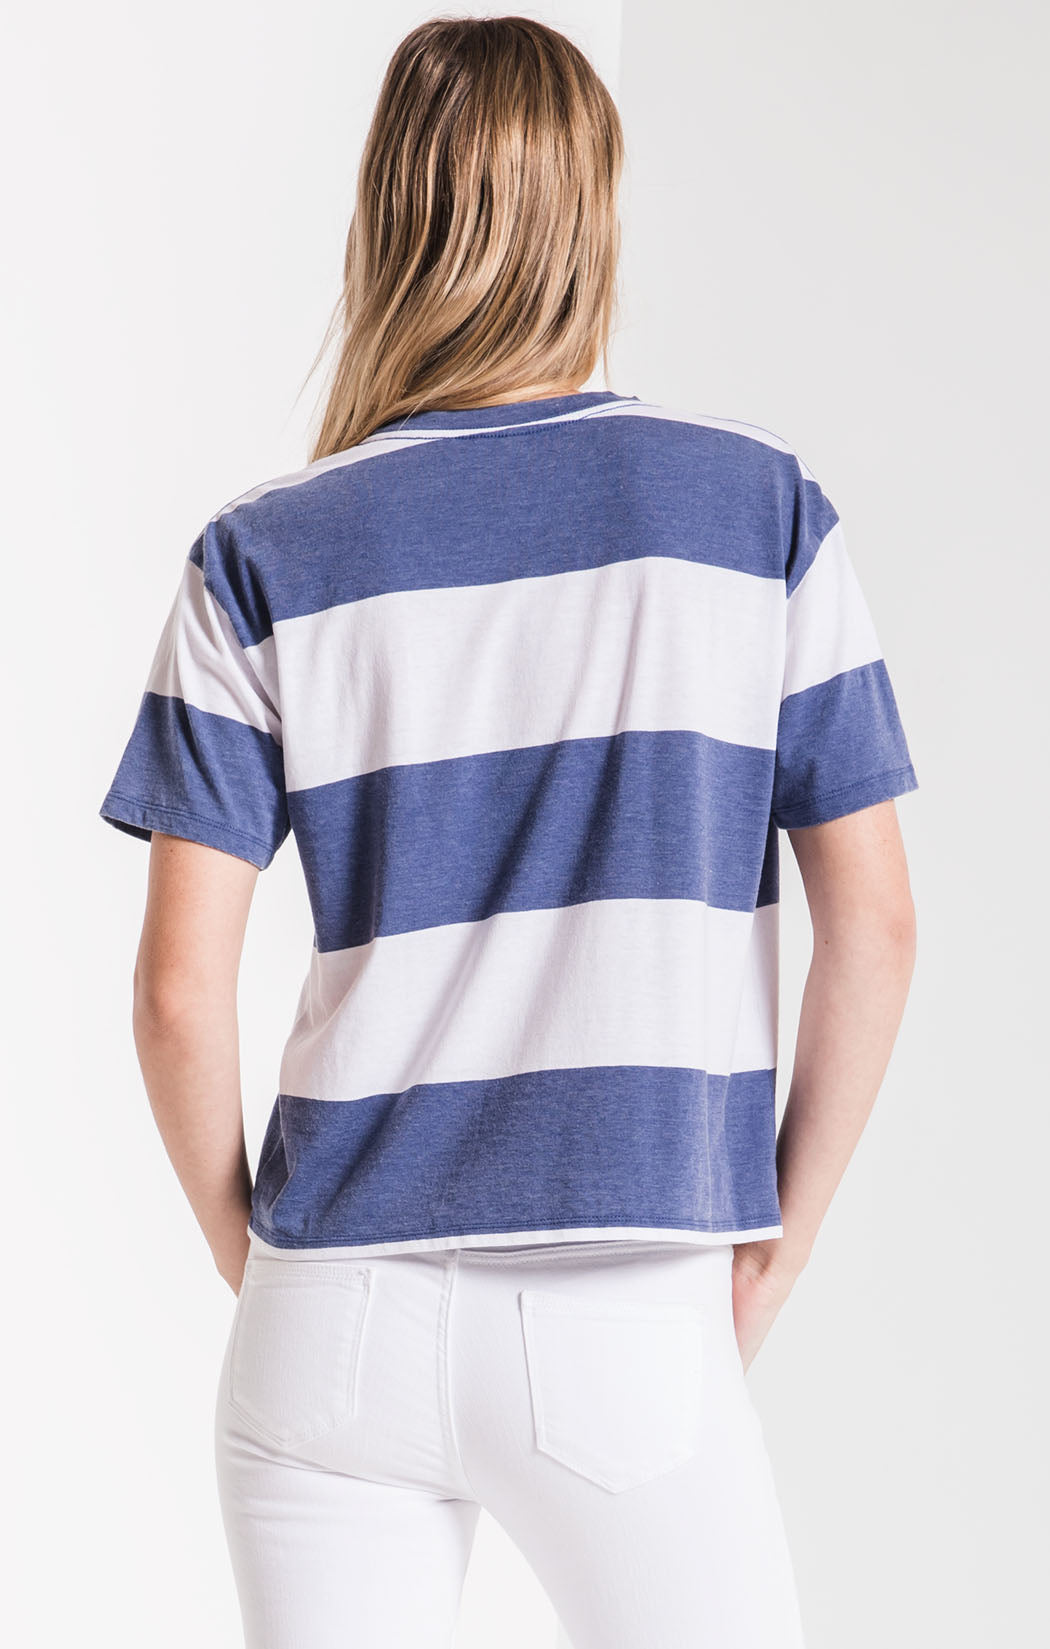 Tops The Venice Crew Tee Coastal Blue